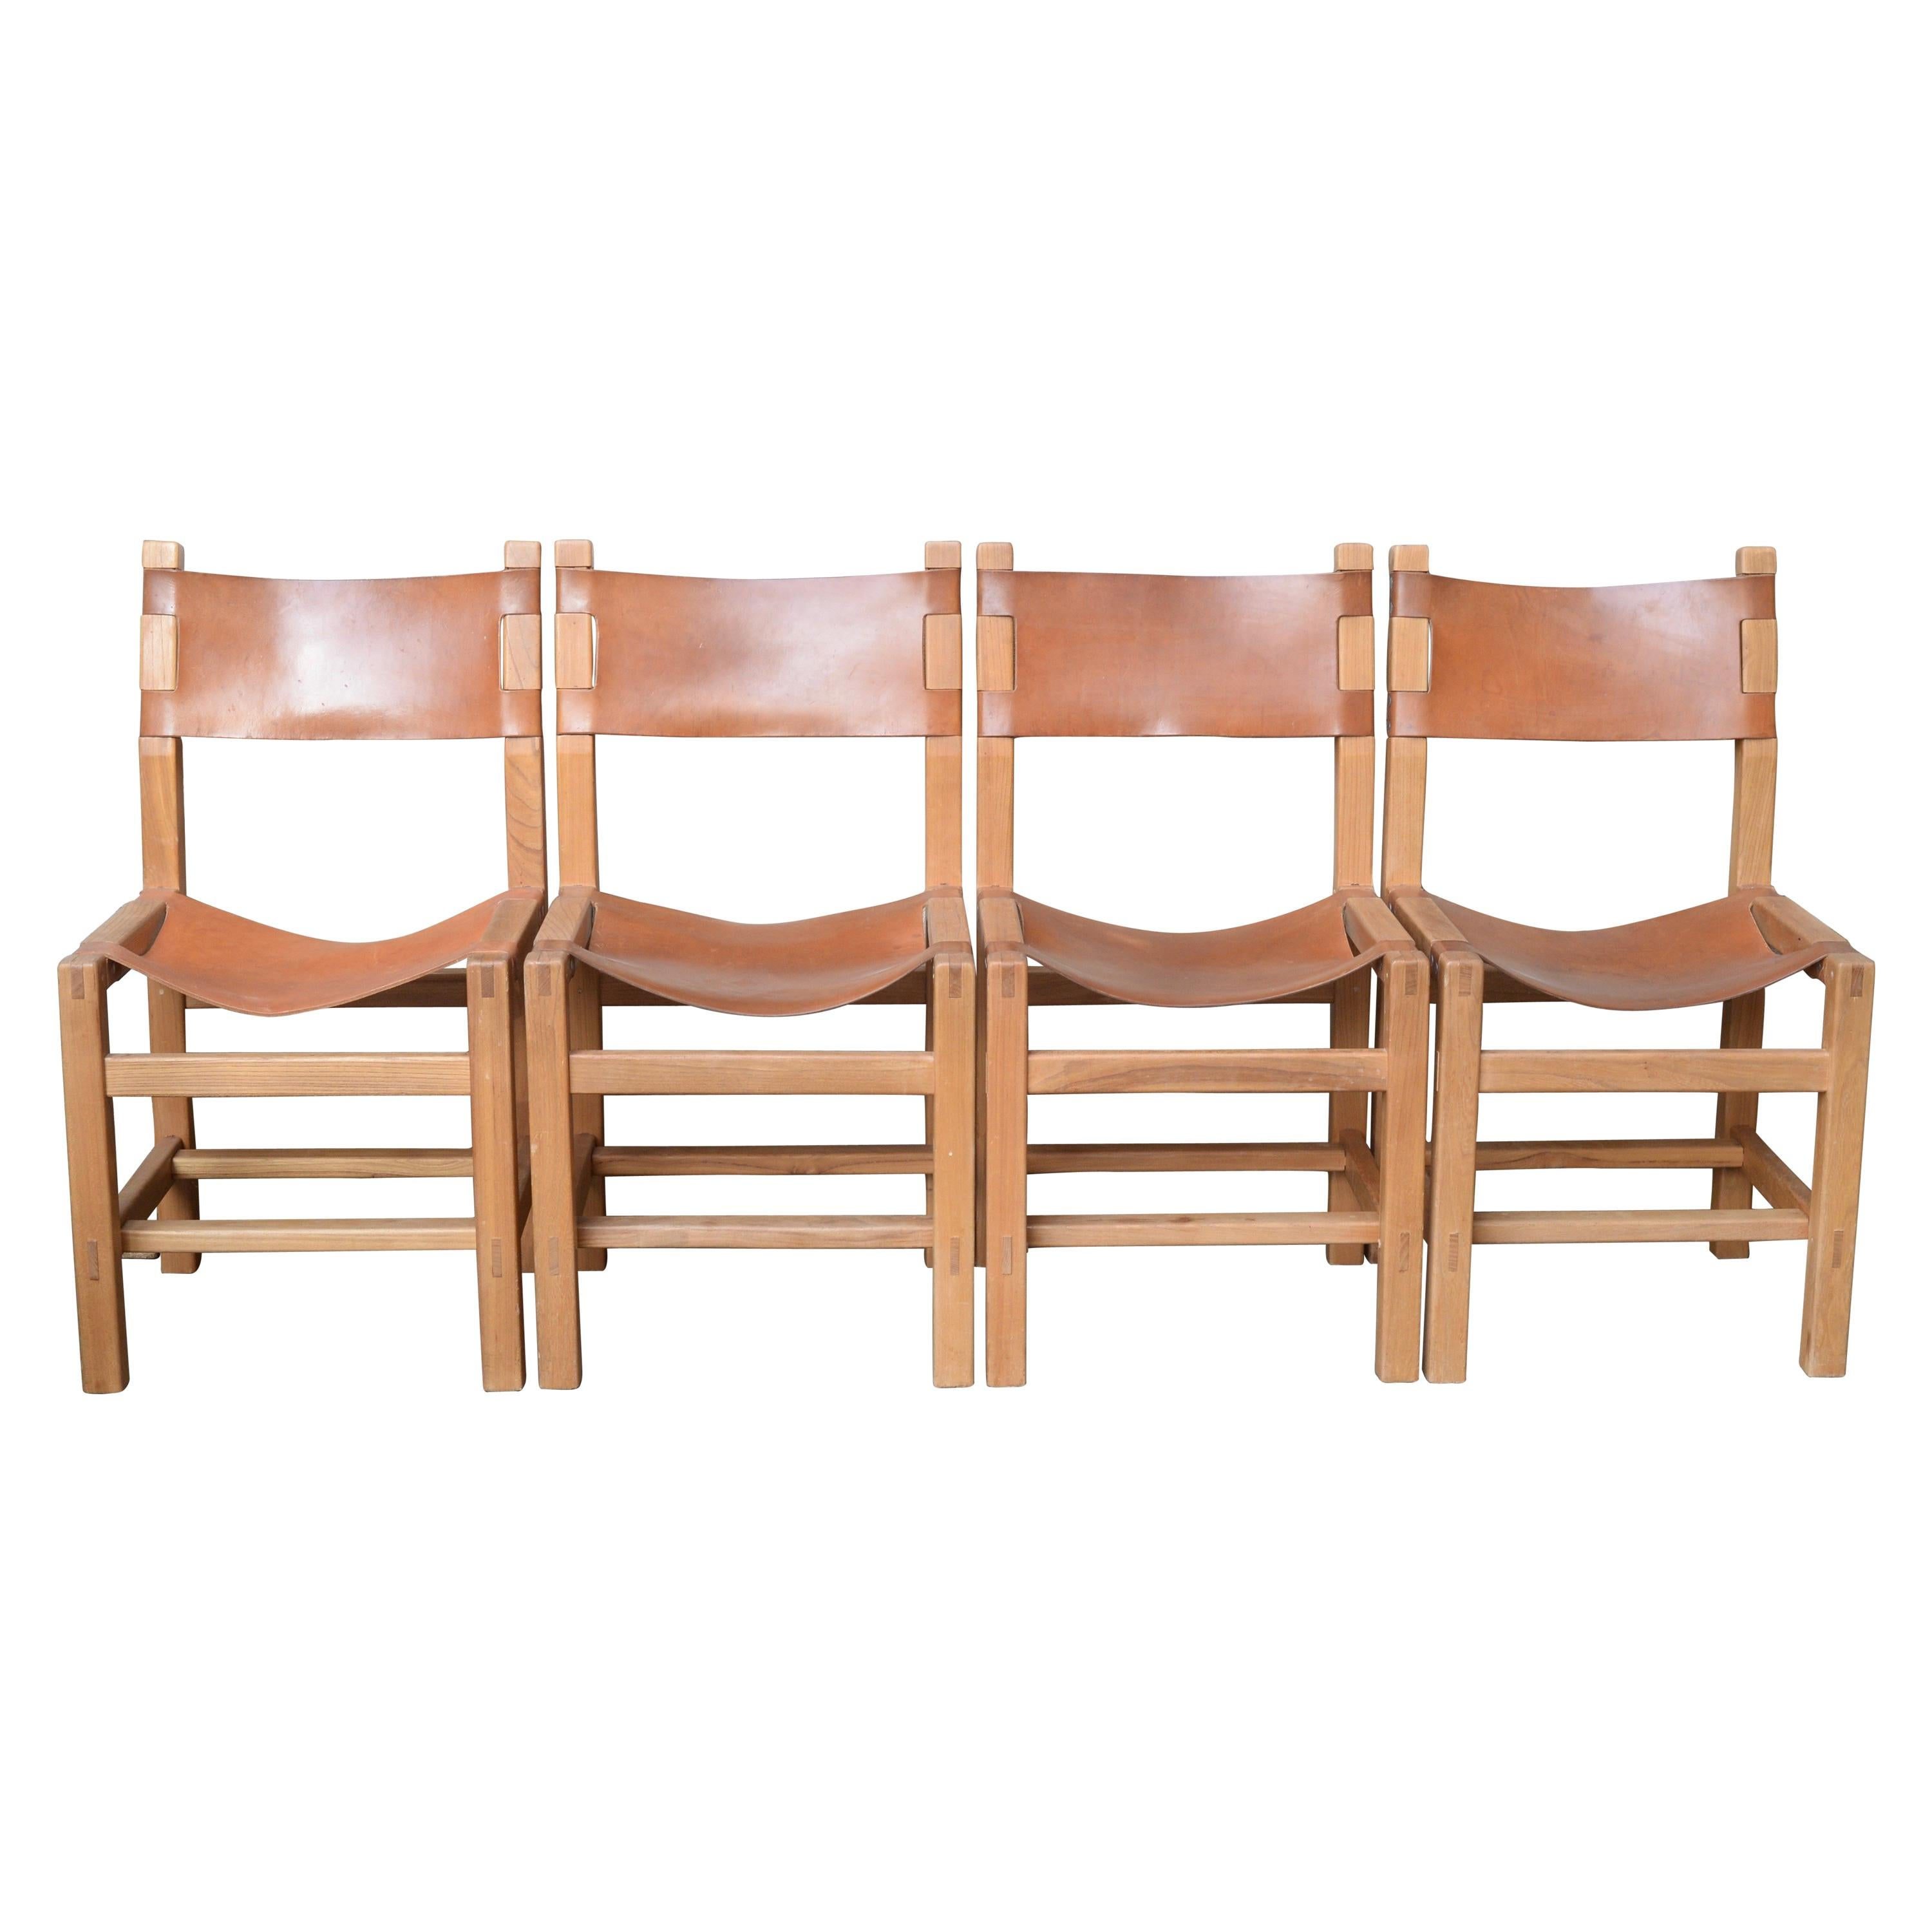 Peachy Set Of 4 Chairs And Natural Leather Seat Created By Regain House In 1960 Customarchery Wood Chair Design Ideas Customarcherynet